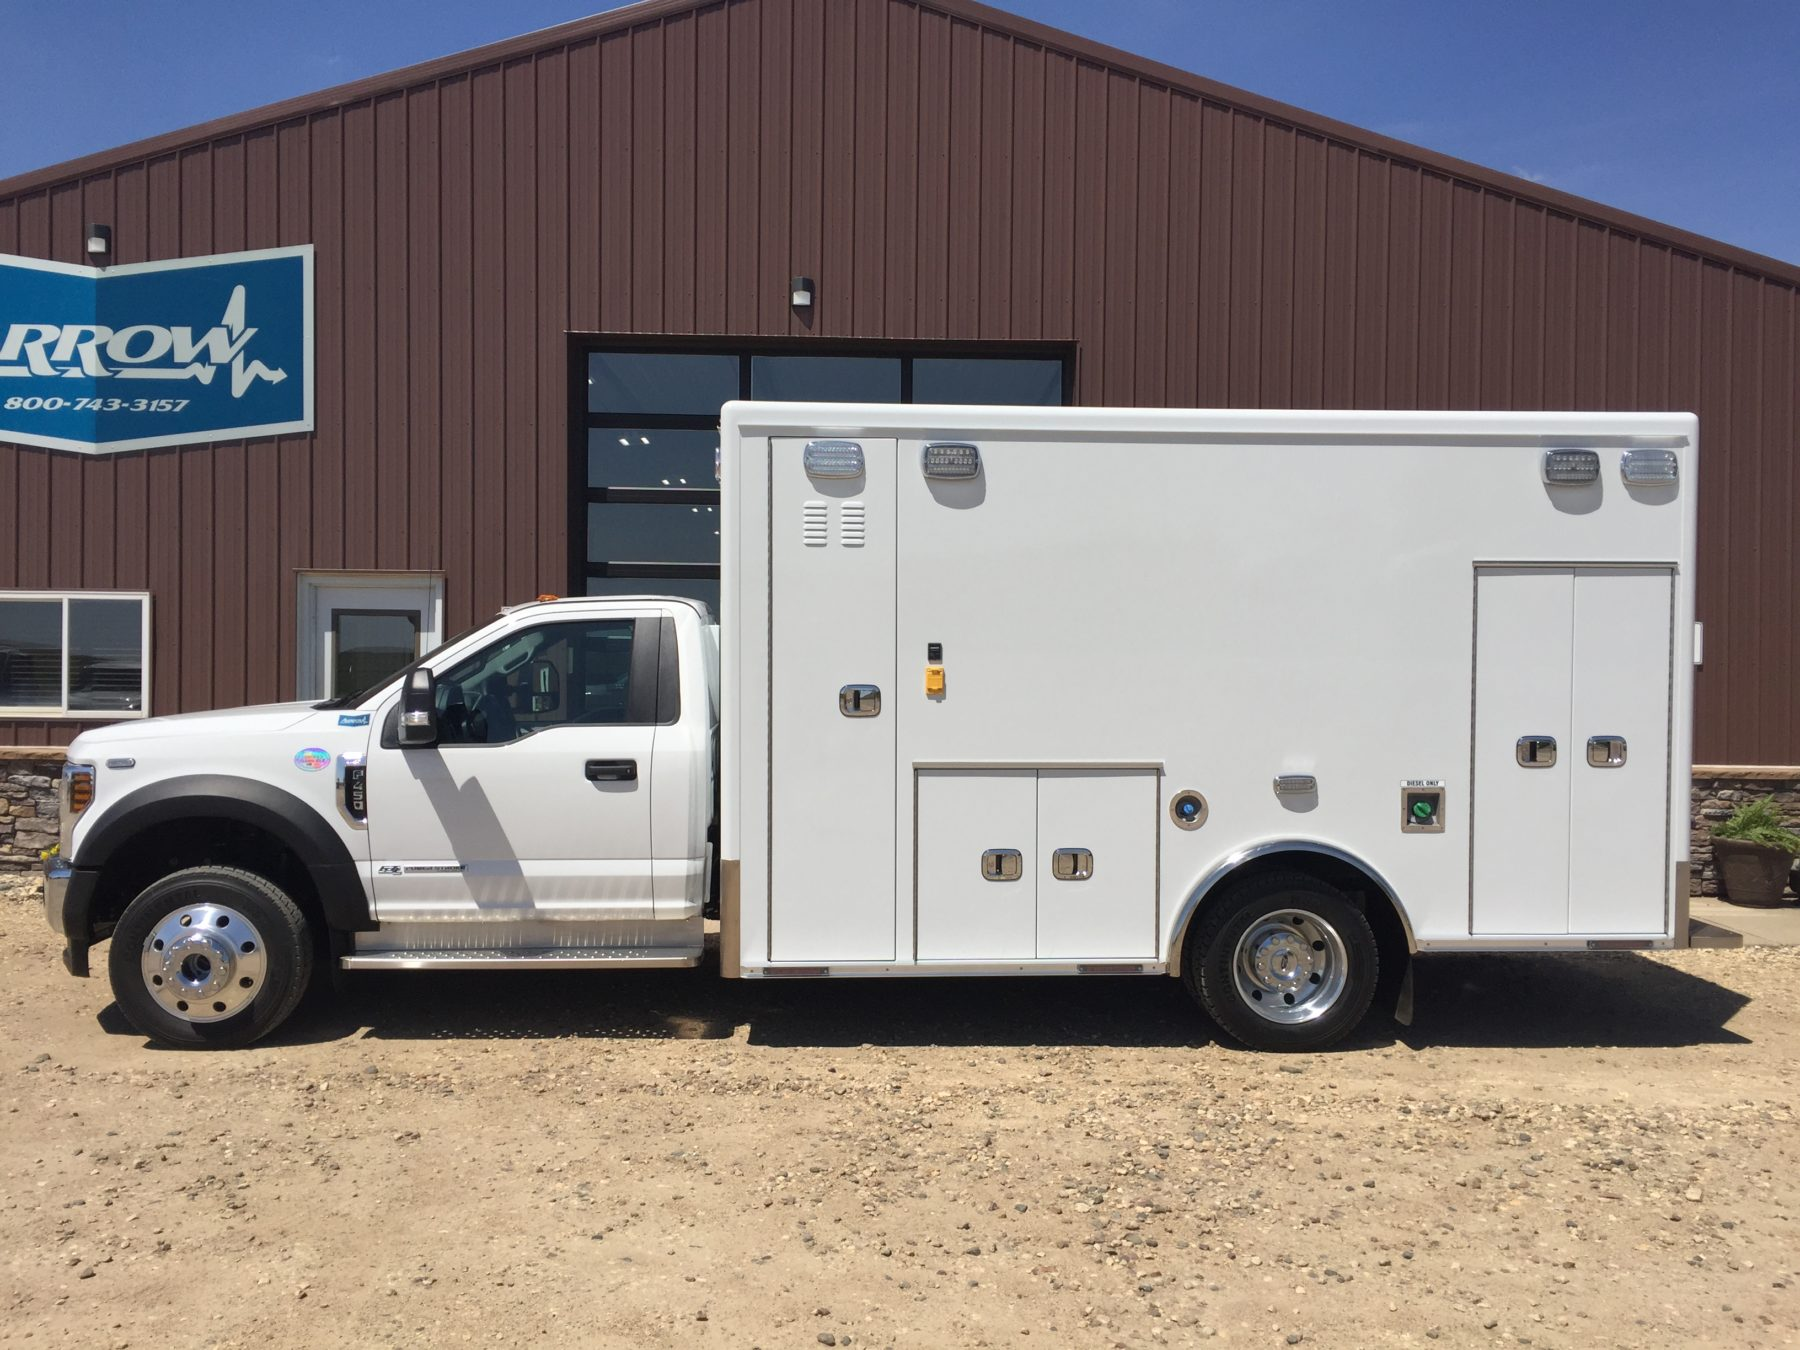 2019 Ford F450 4x4 Heavy Duty Ambulance For Sale – Picture 1